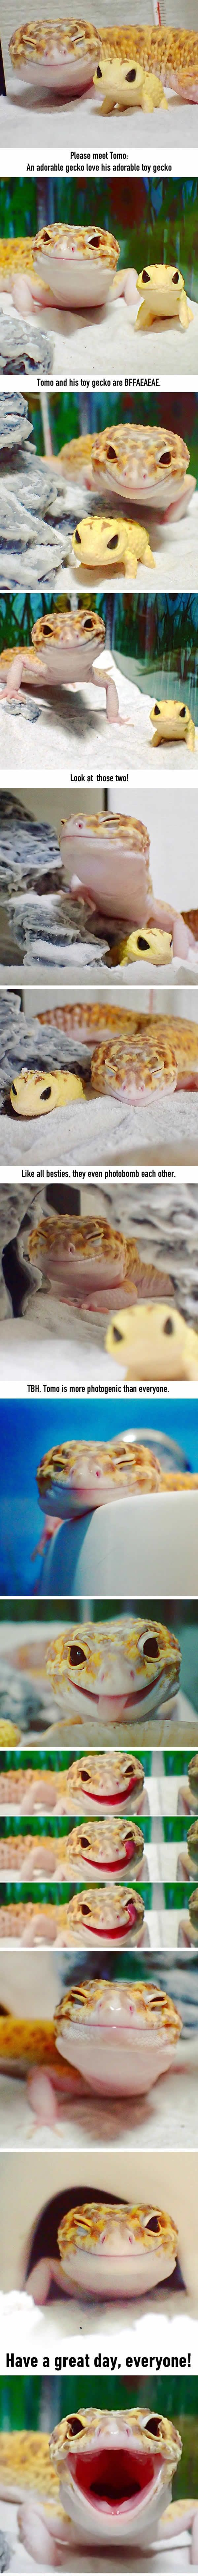 This Gecko Smiling With His Toy Gecko Is The Purest Thing You'll See Today - Album on Imgur